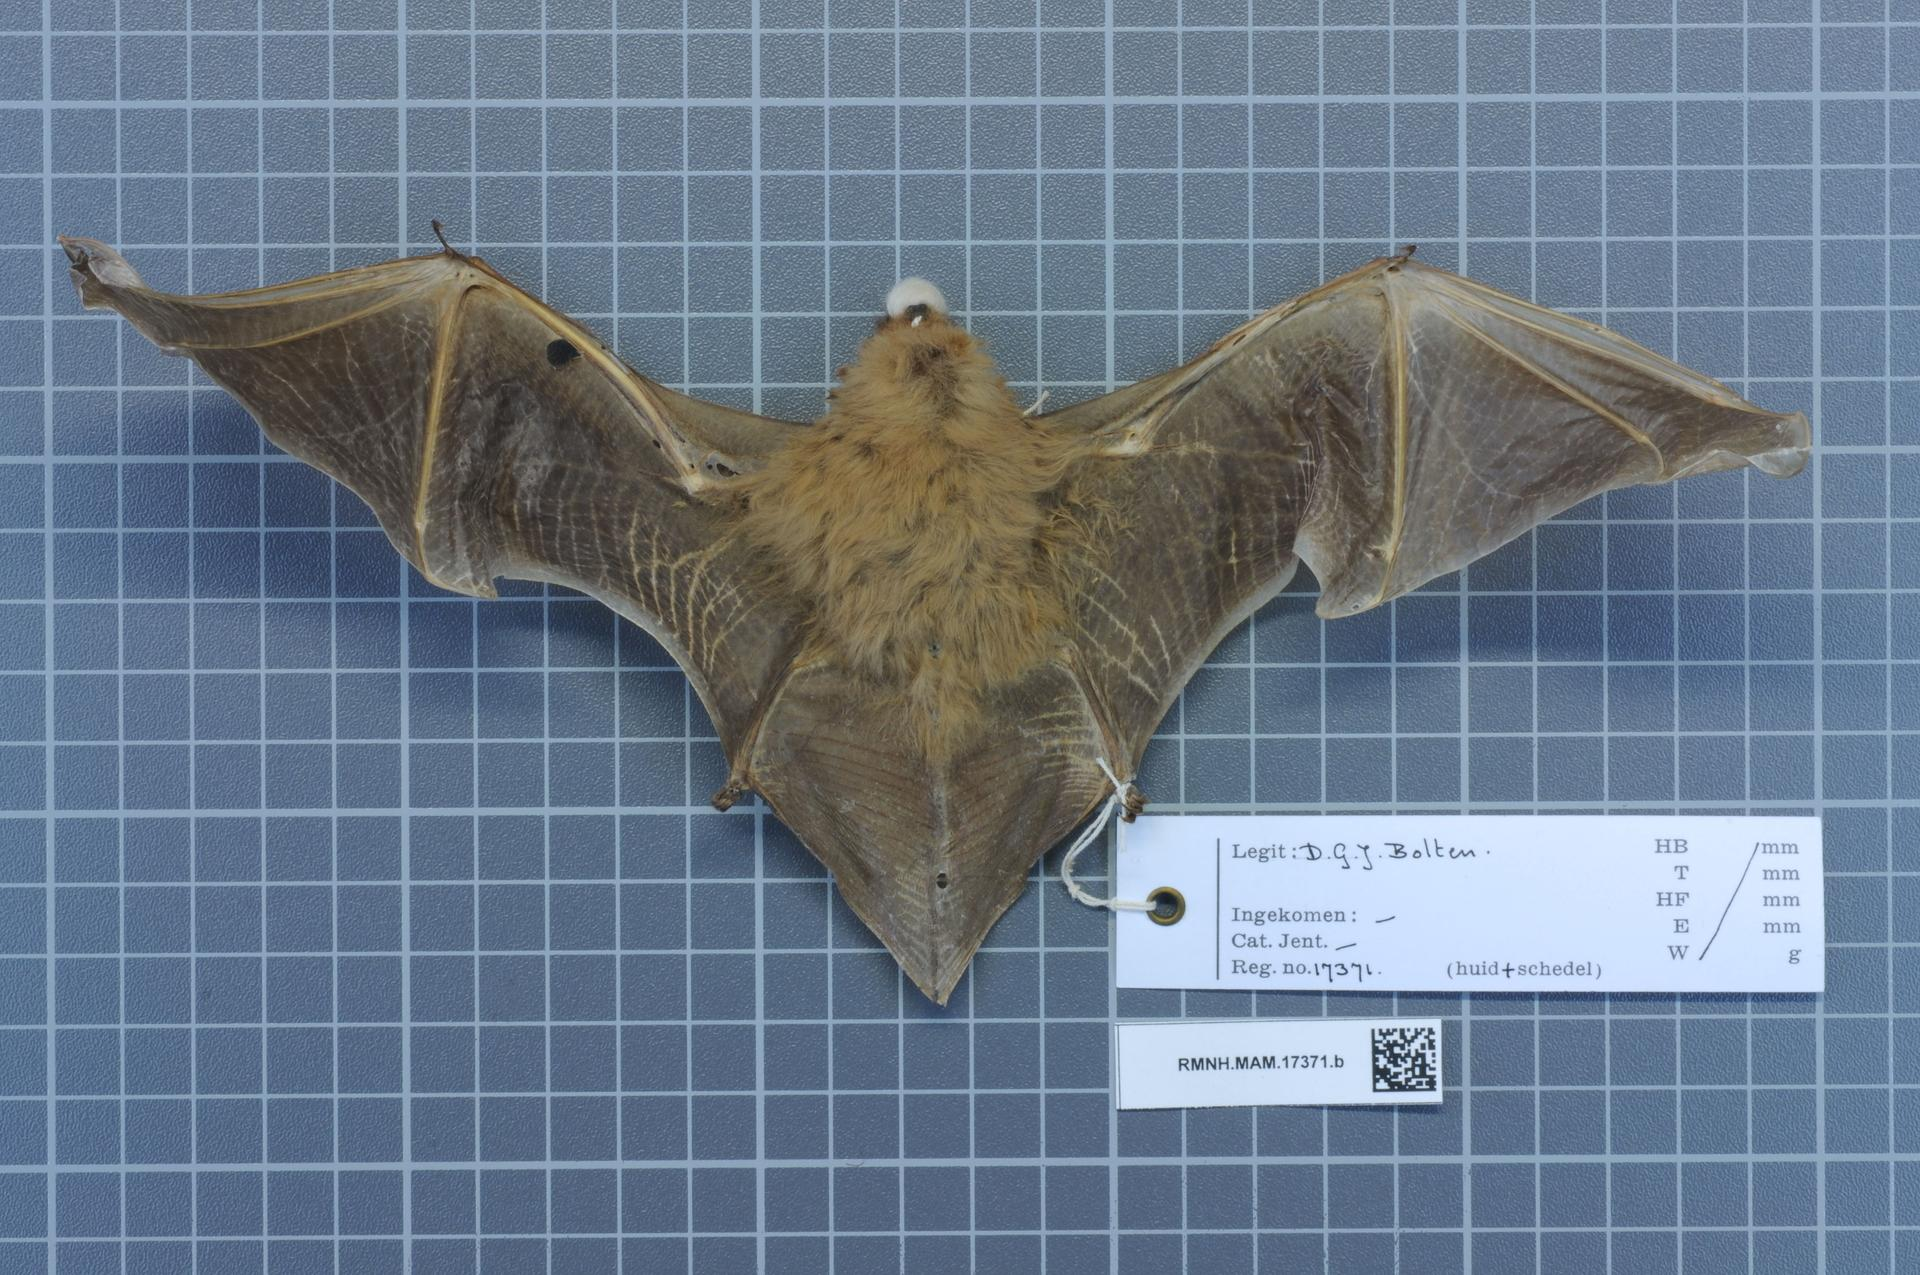 Photo of a deceased southern yellow bat